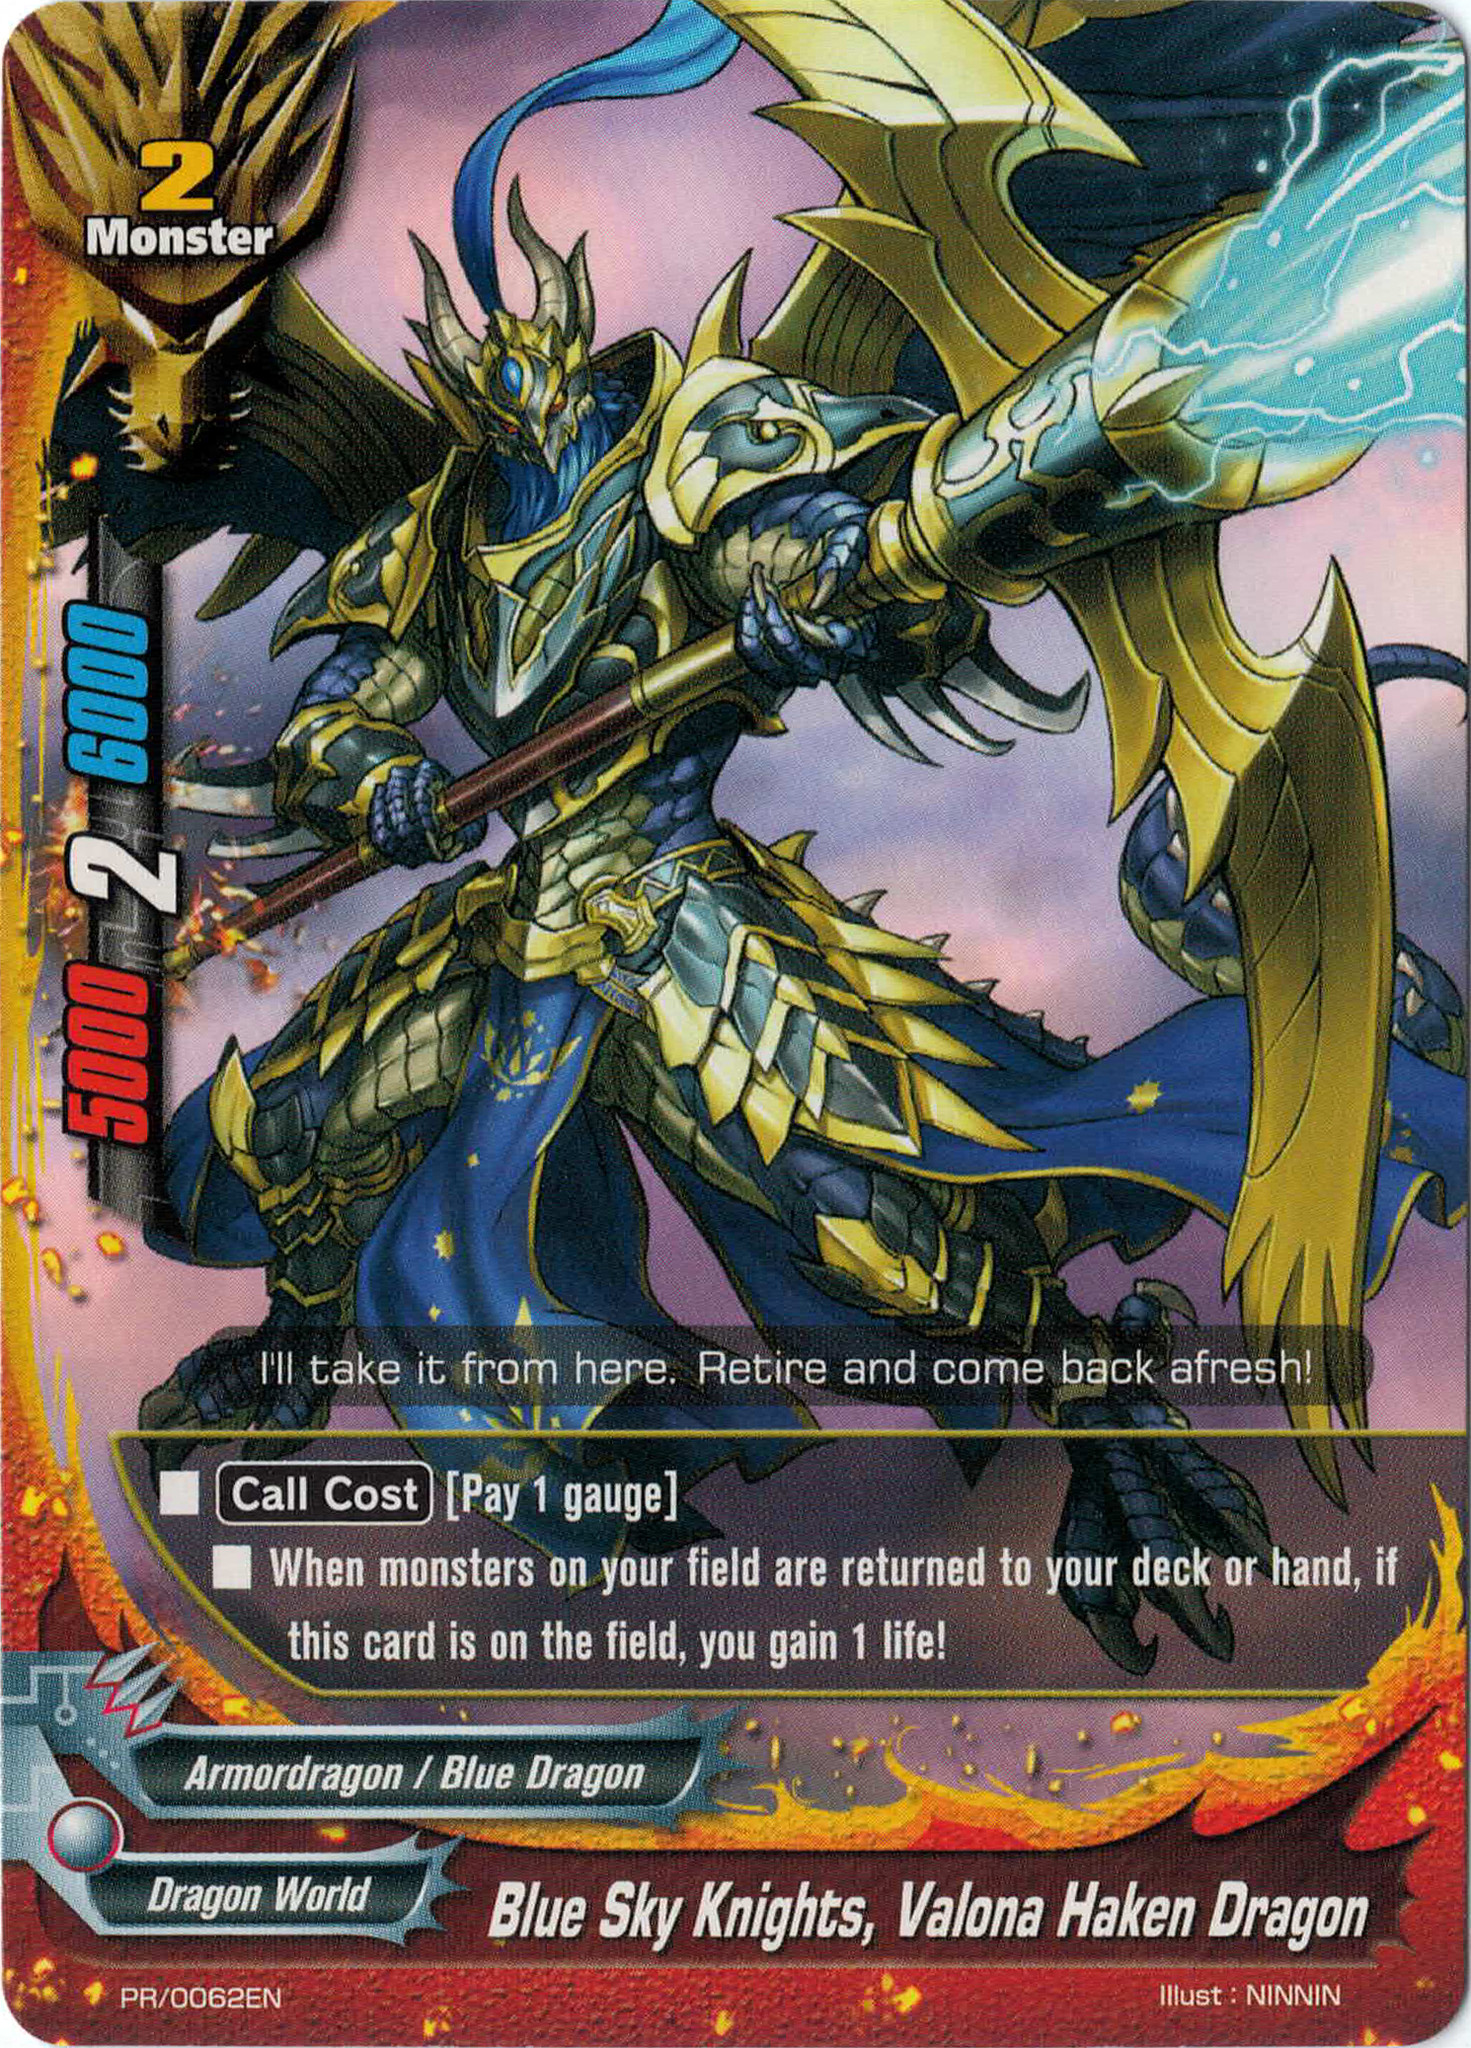 Blue Sky Knights Valona Haken Dragon Future Card Buddyfight Wiki